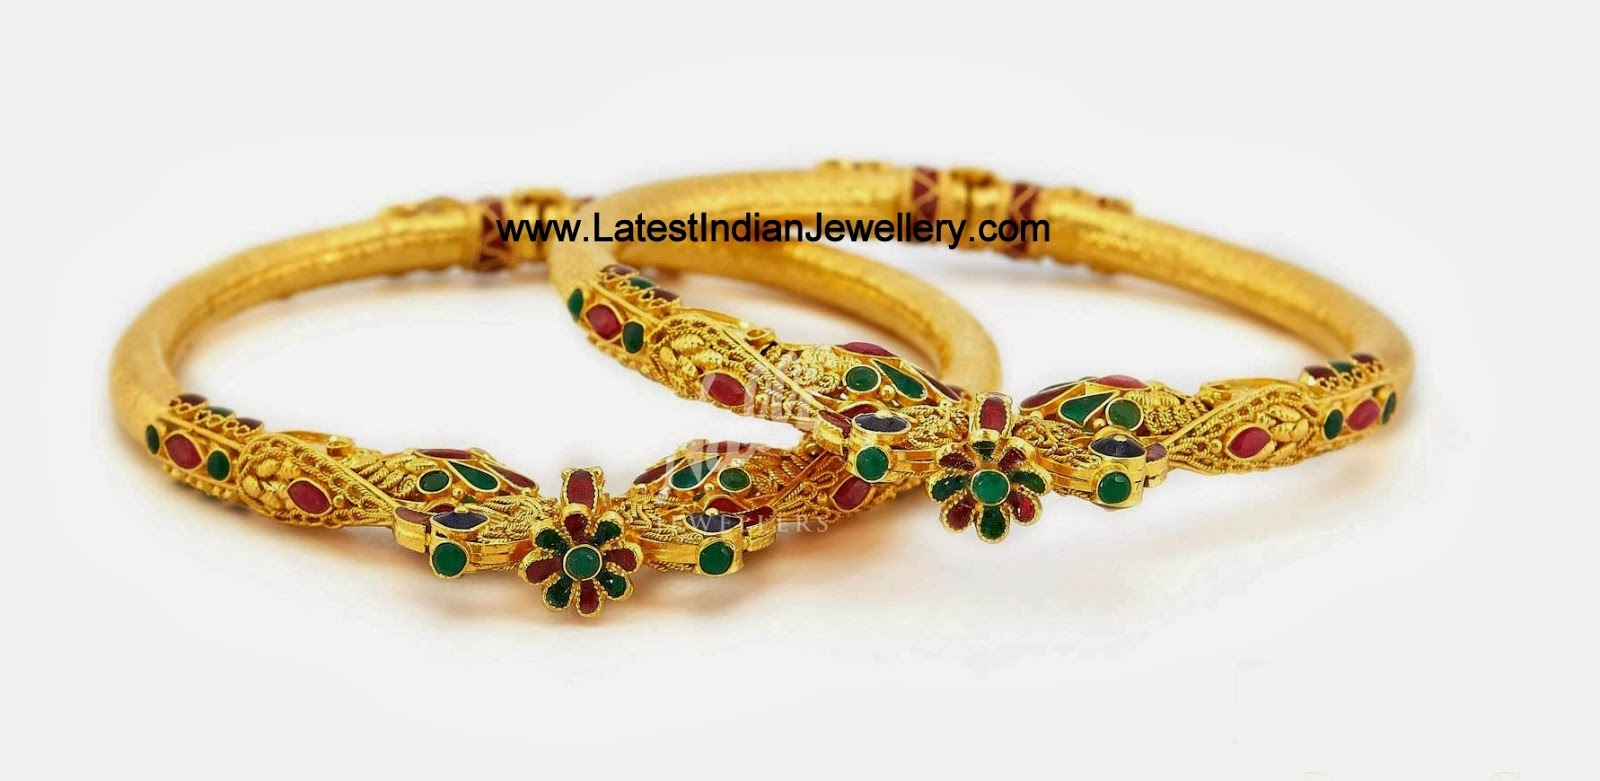 Antique Gold Kada Designs